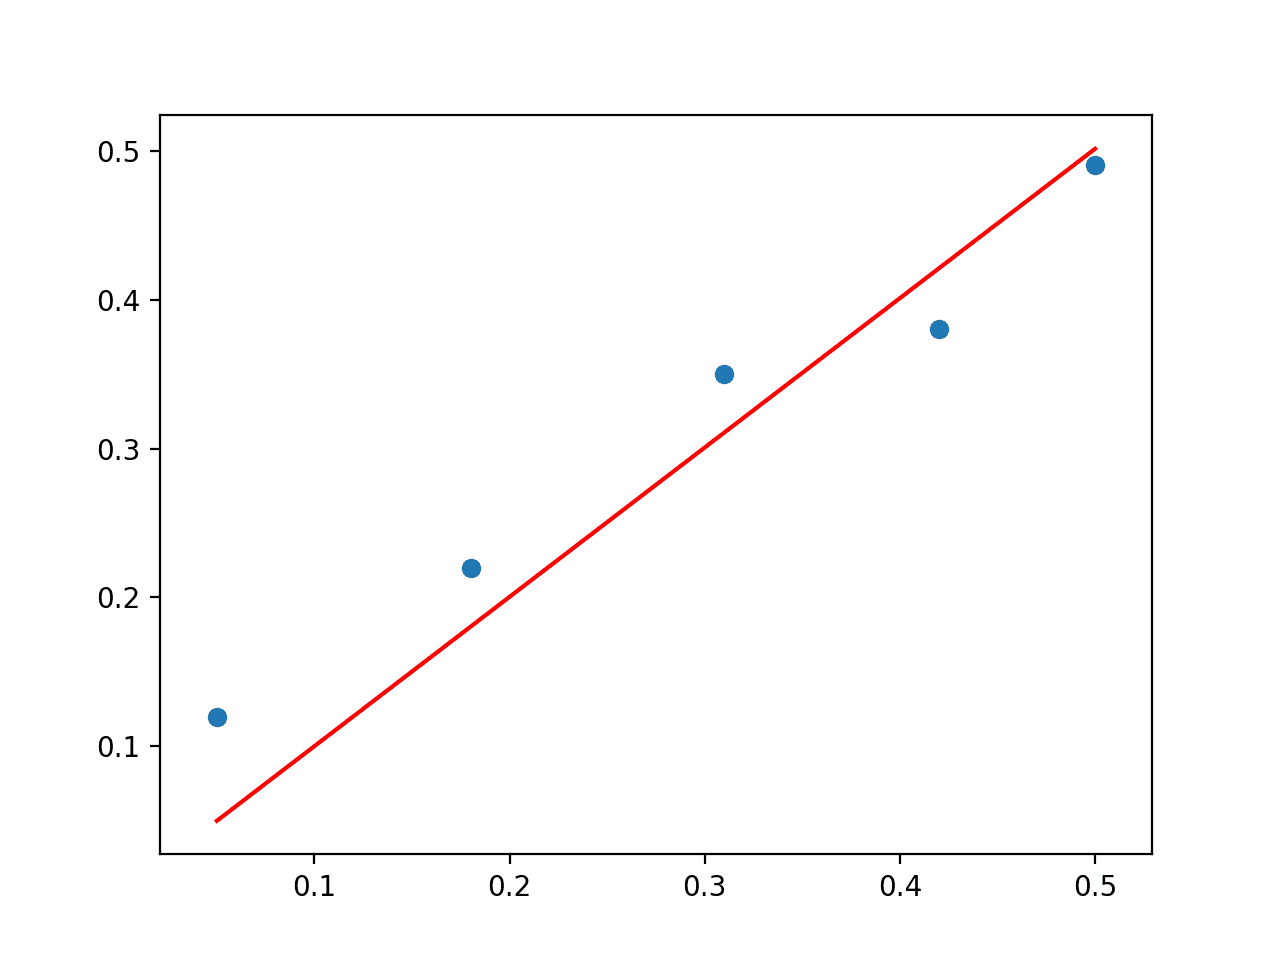 Scatter Plot of QR Decomposition Solution to the Linear Regression Problem